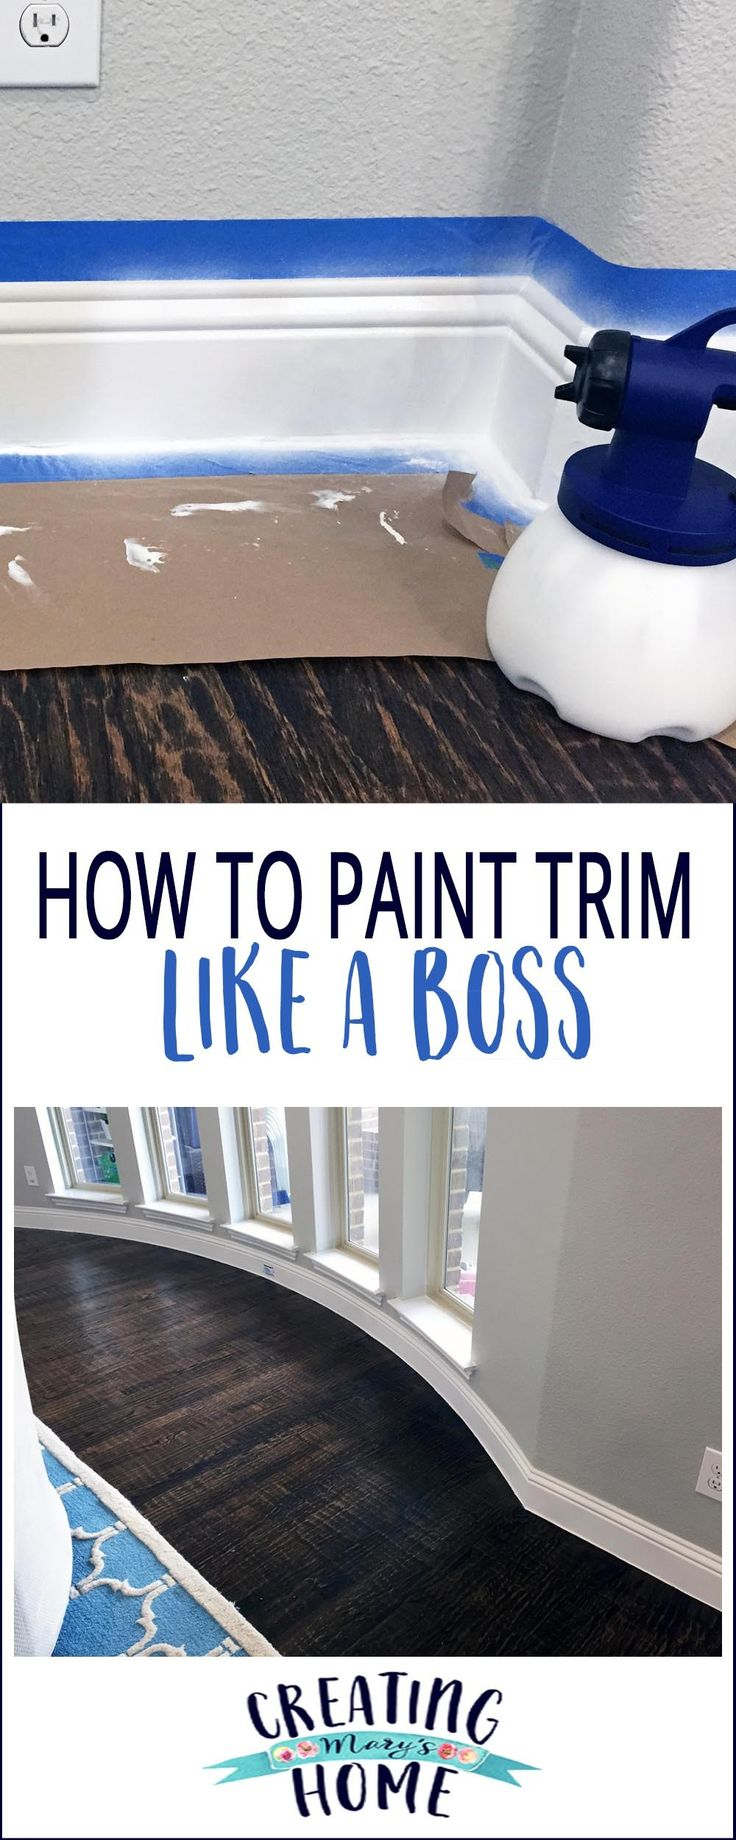 How To Paint Trim Like a Boss (Diy Painting Tips)